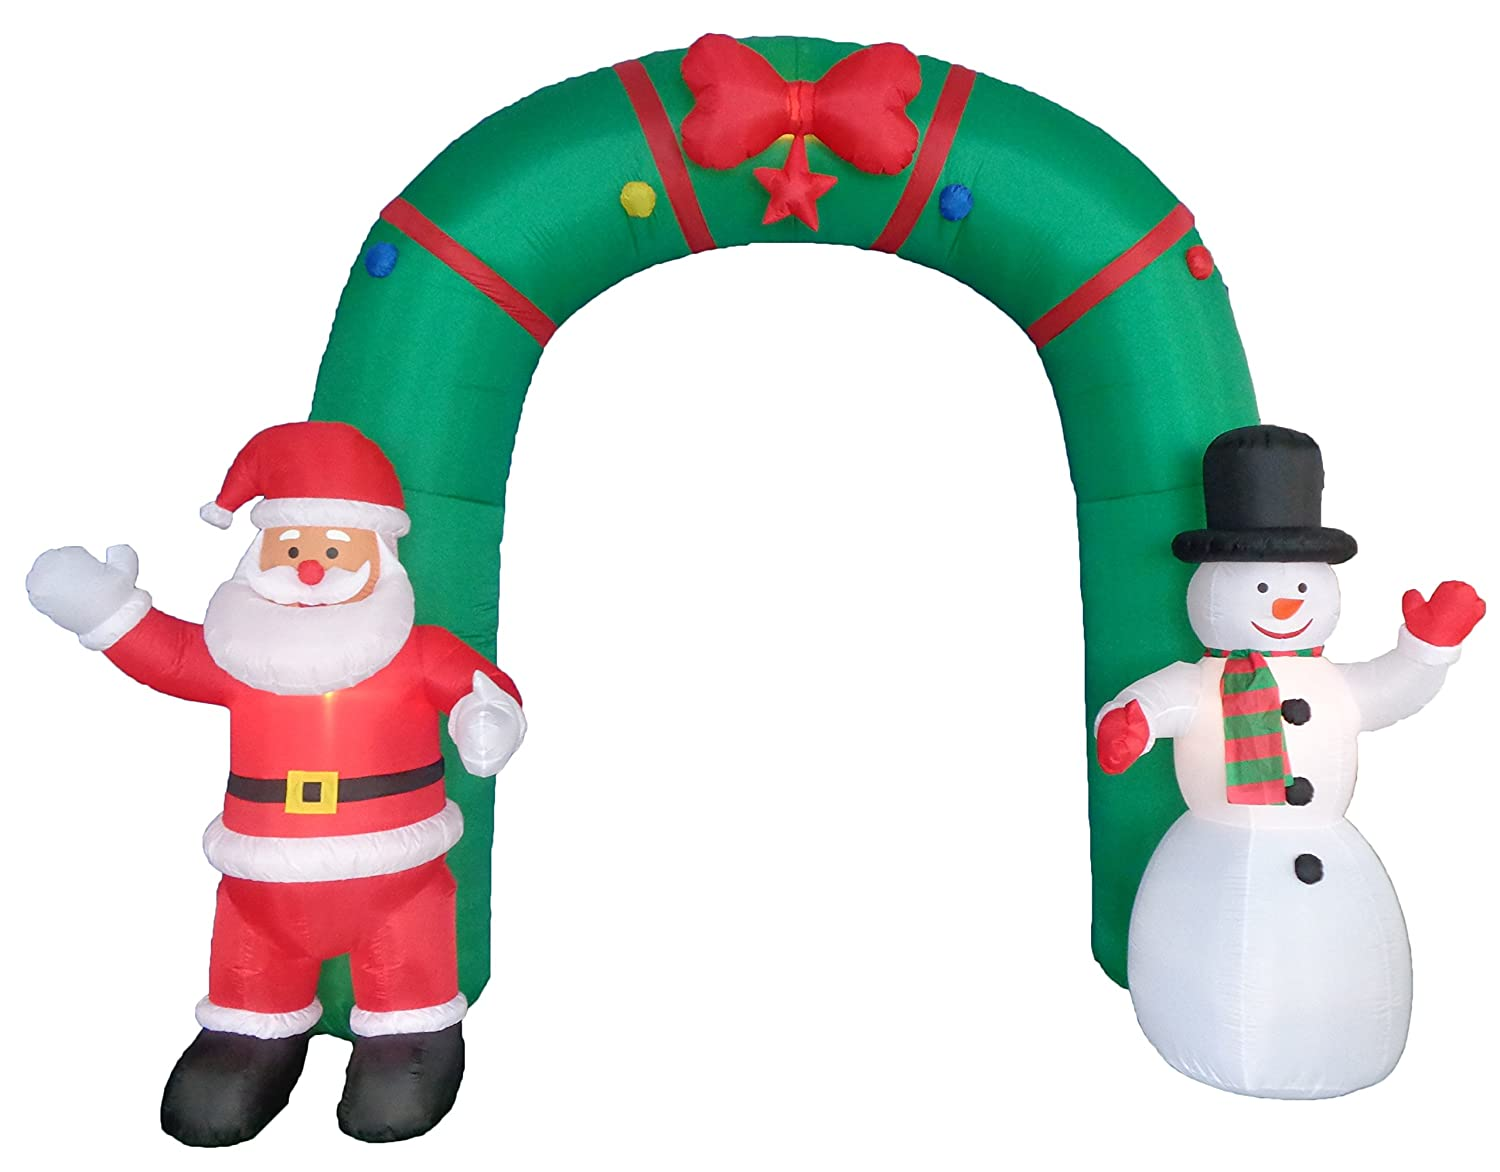 Amazon.com: 10 Foot Tall Lighted Christmas Inflatable Archway with ...